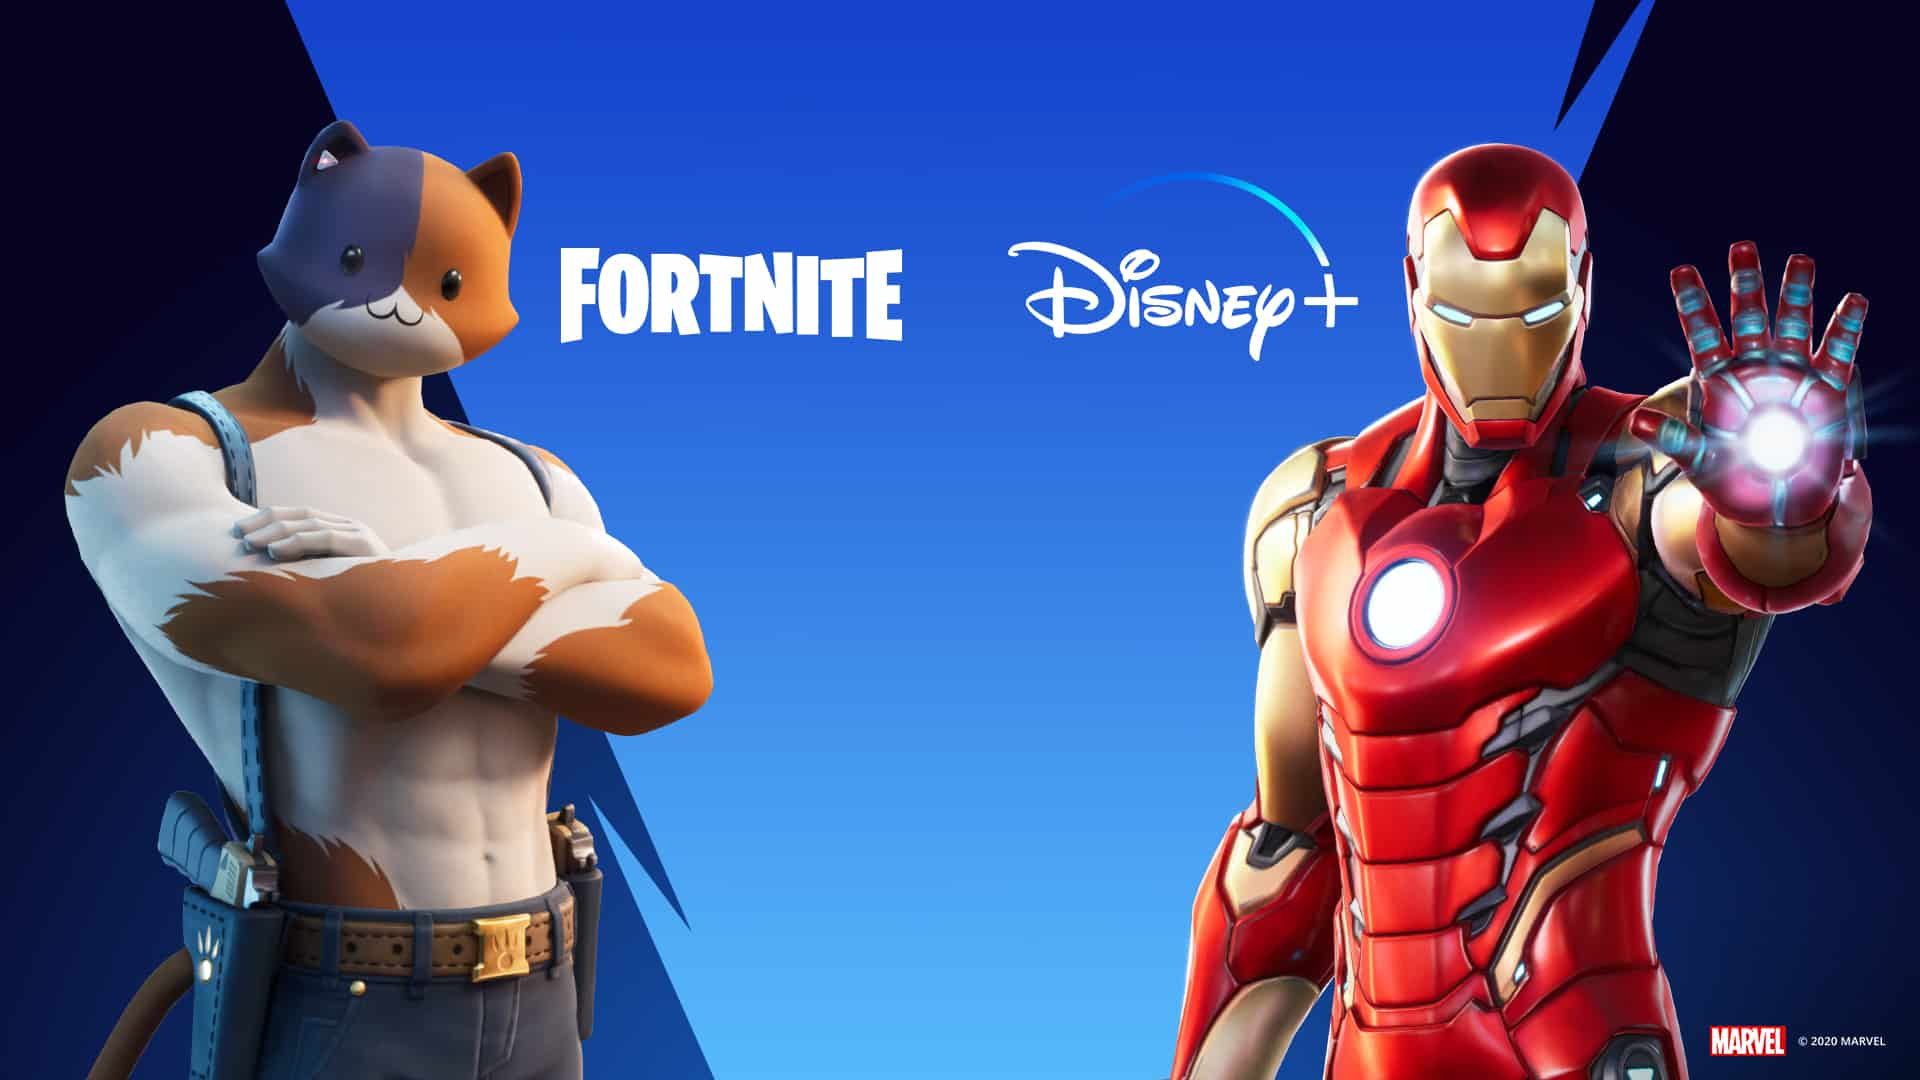 Epic games offer free Disney plus subscription for its in-game purchases